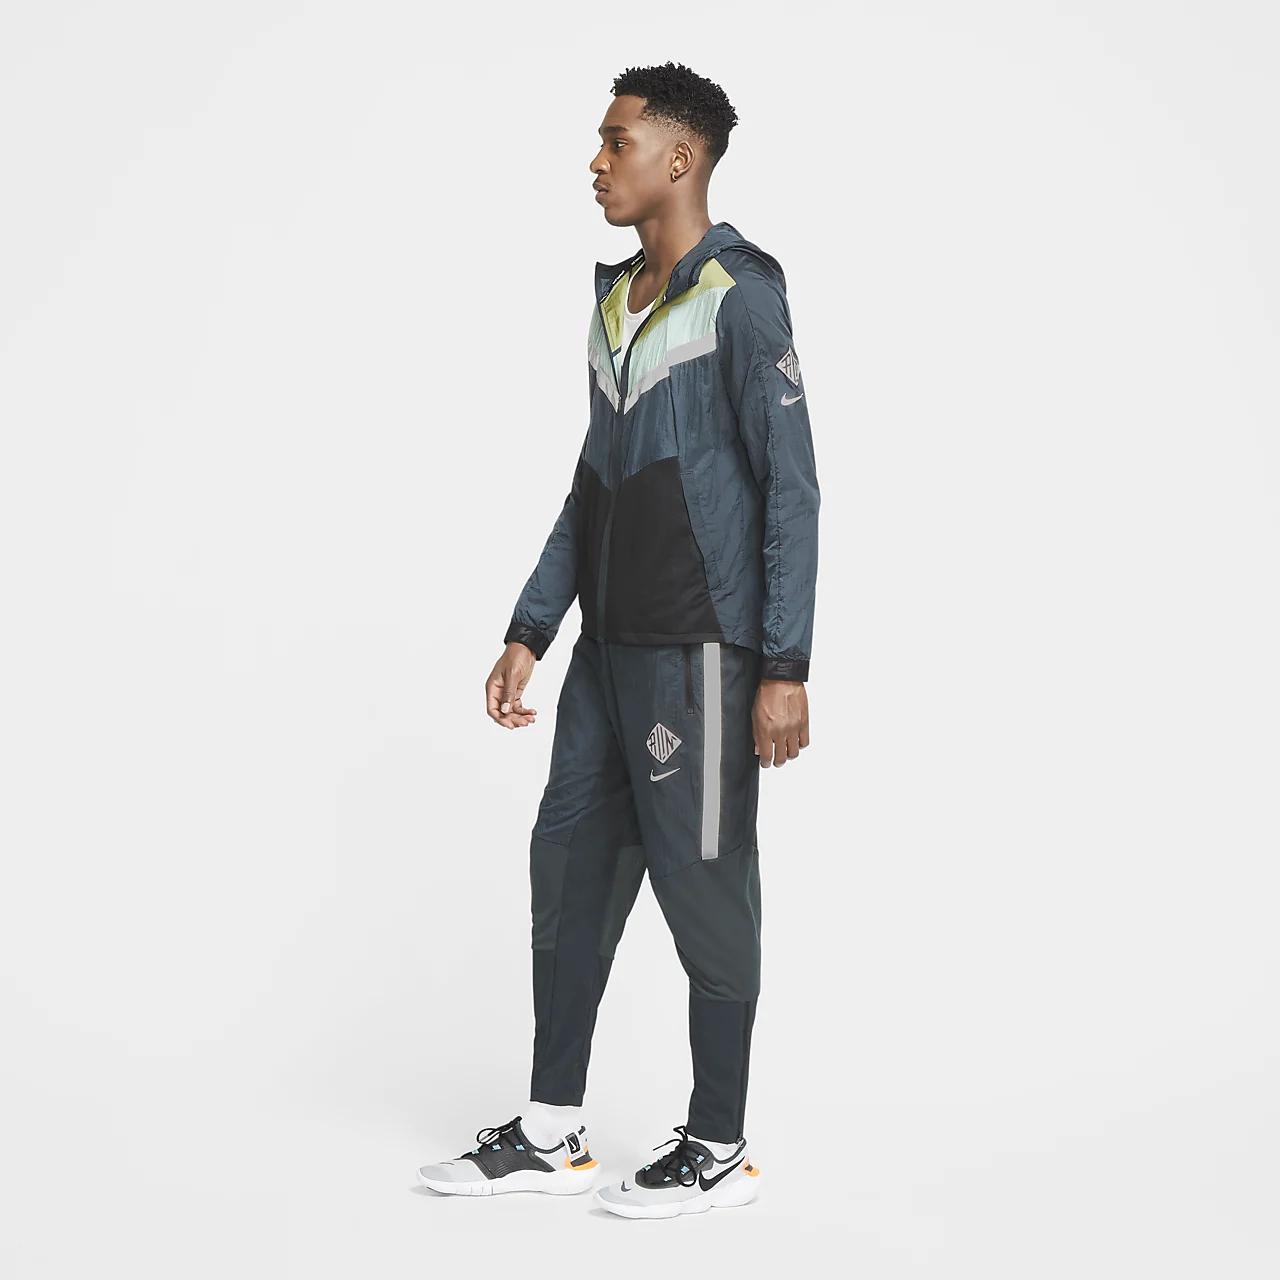 Nike Windrunner Wild Run Mens' Running Jacket CU5738-364